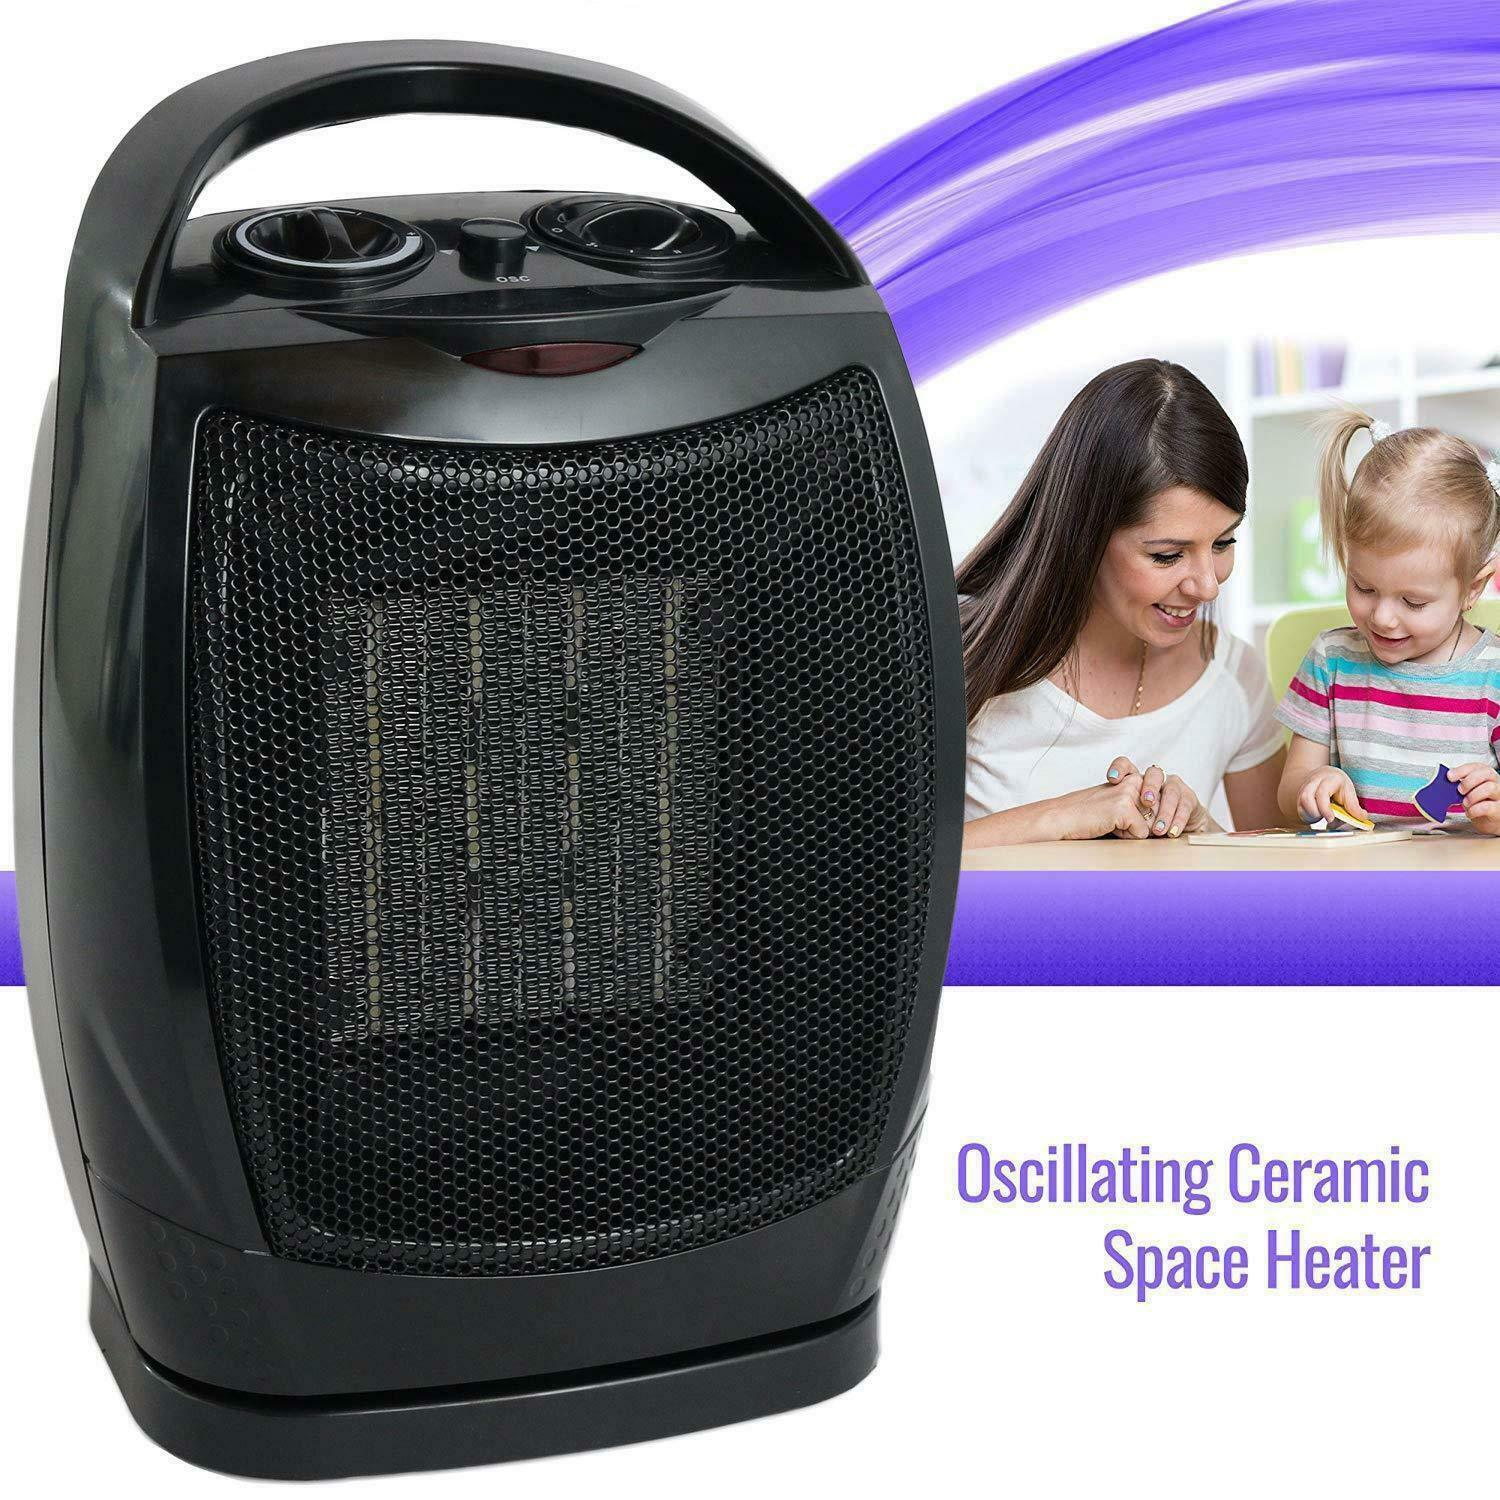 Oscillating Ceramic Space Heater Fan Home Office Adjustable Thermostat, Black Heating & Cooling Appliances